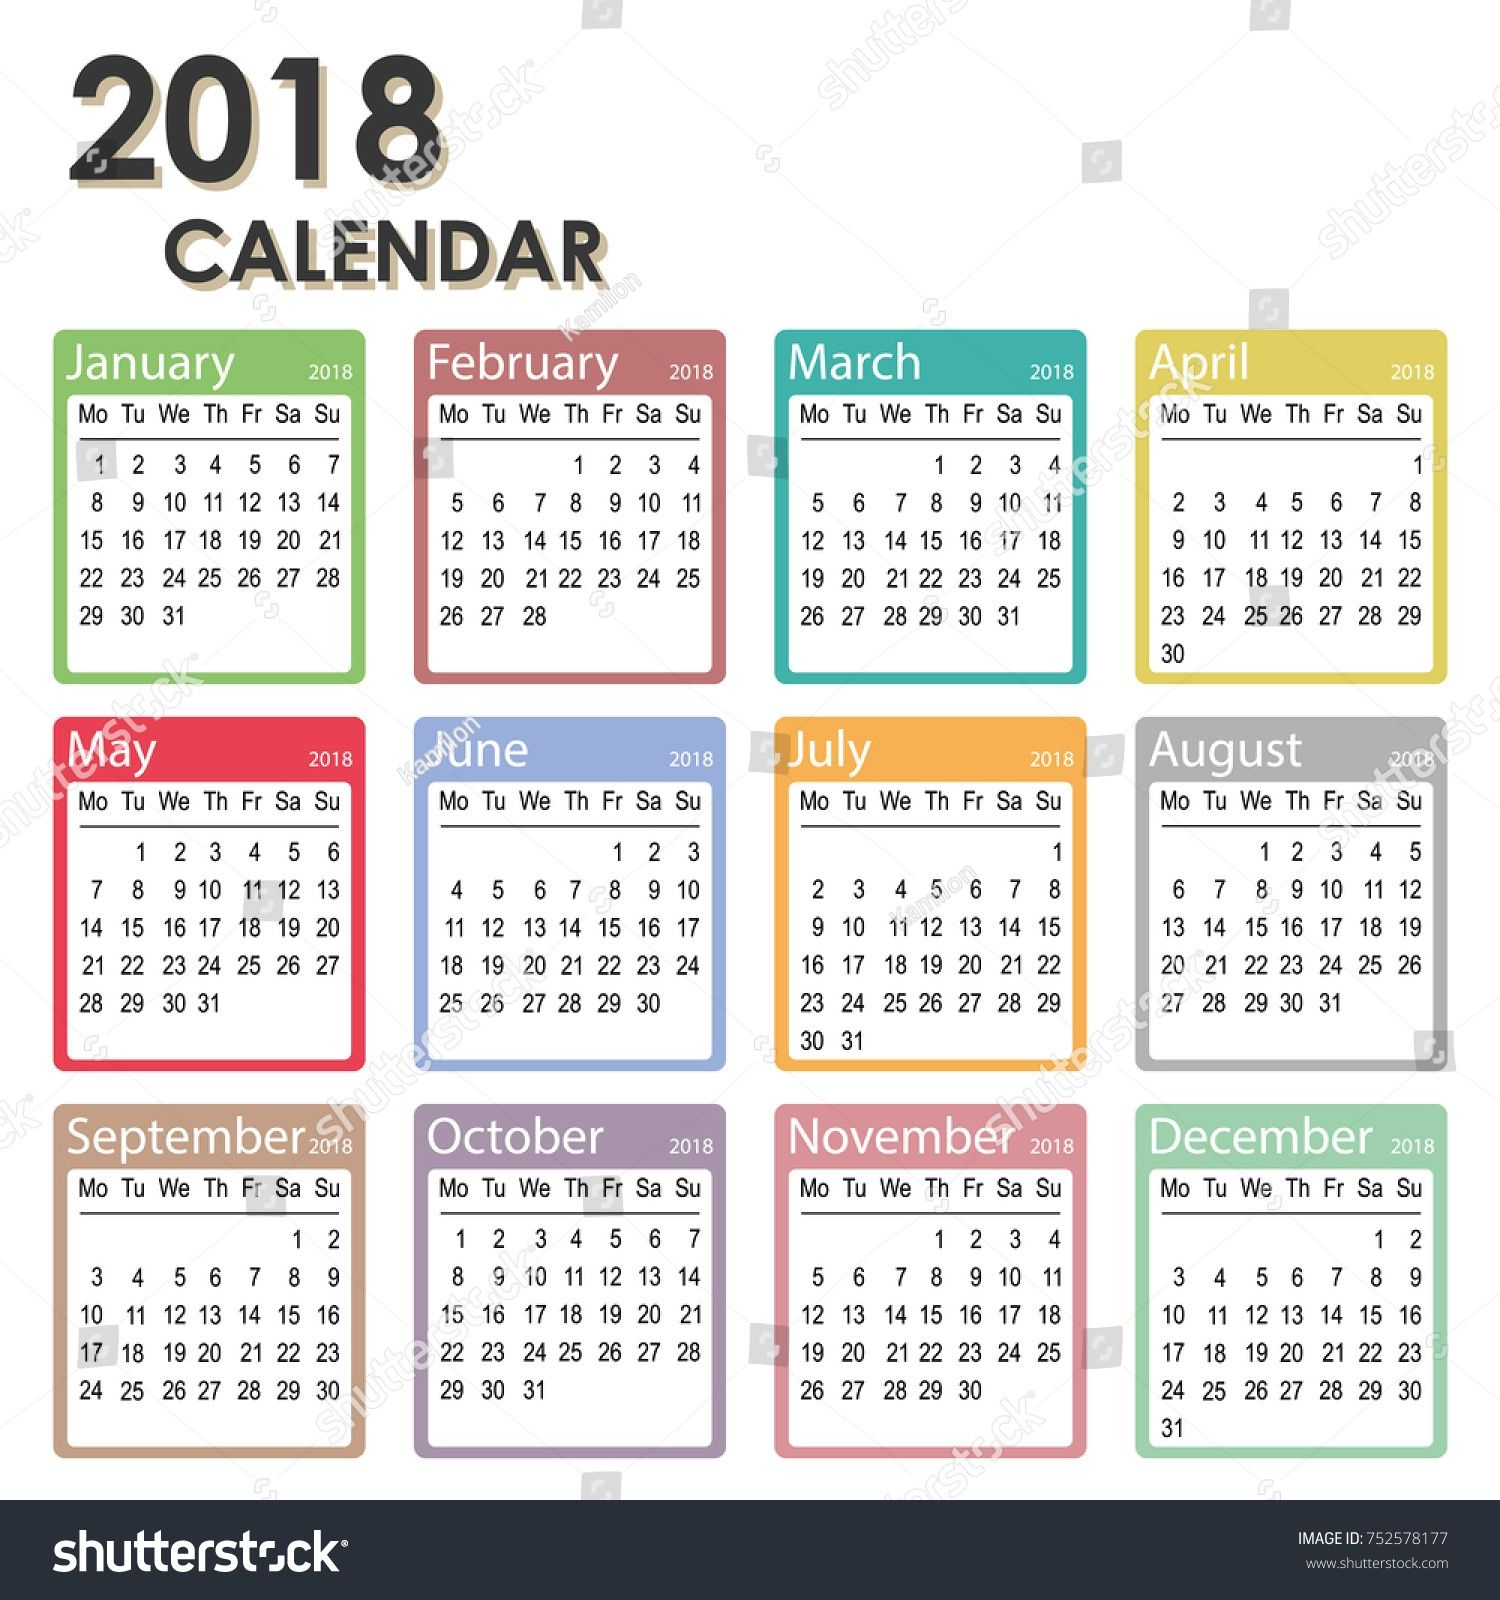 yearly calendar clipart